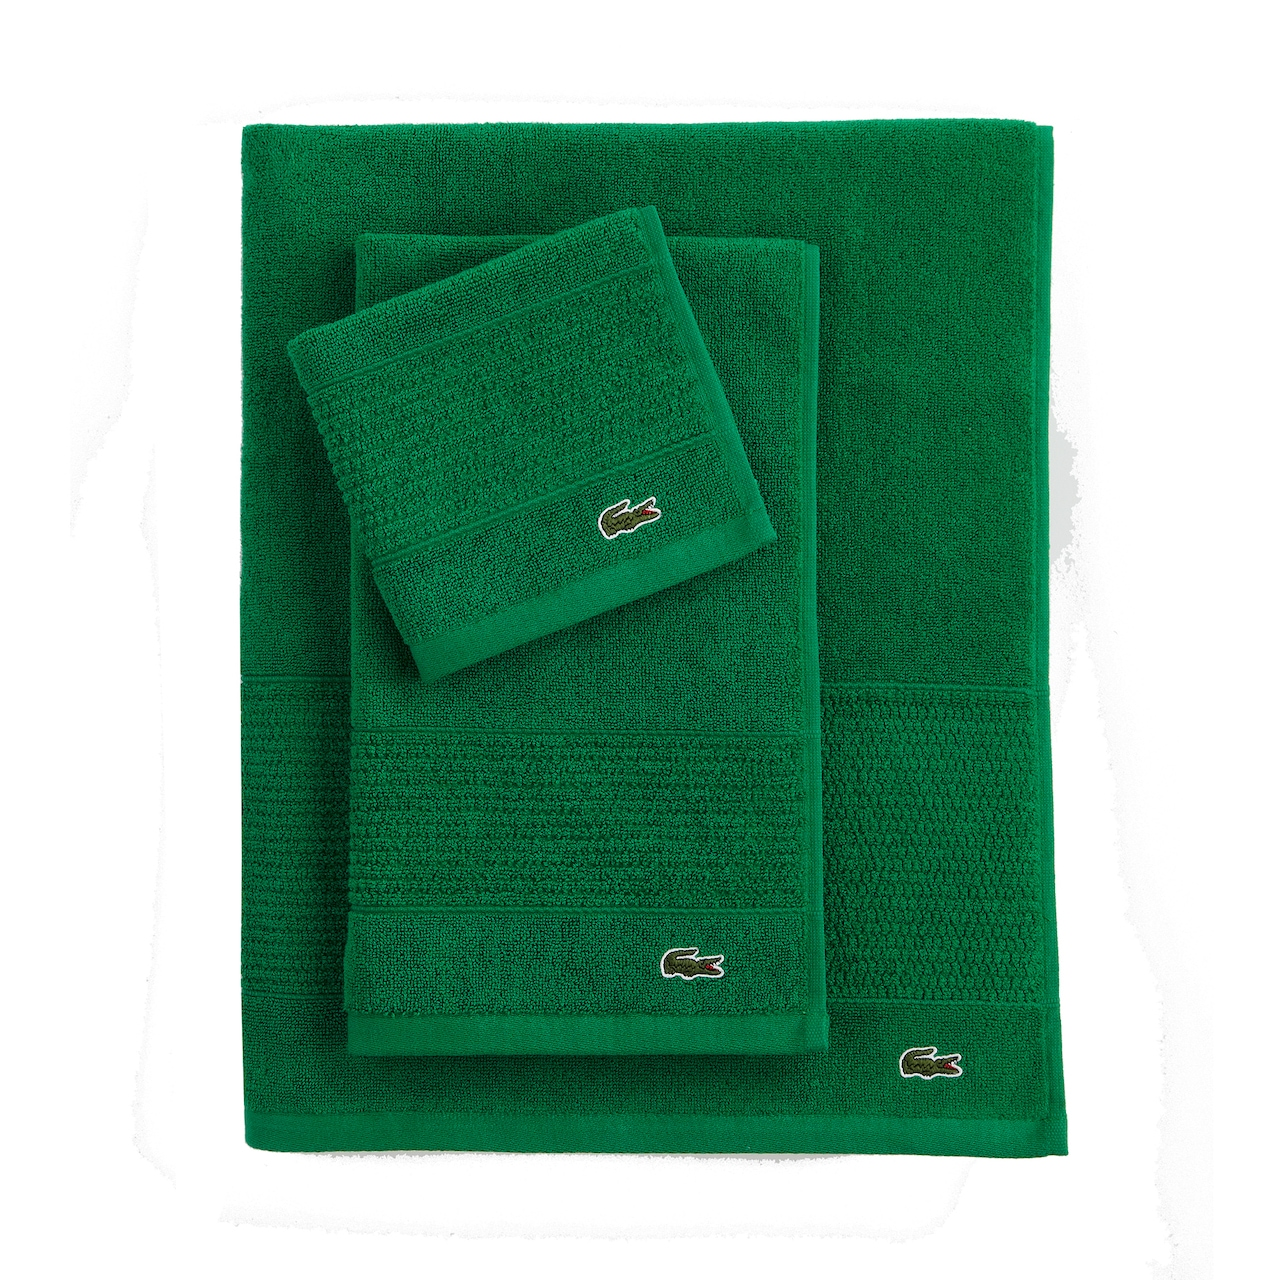 Bathroom Towels Bath Rugs Amp Decor Lacoste